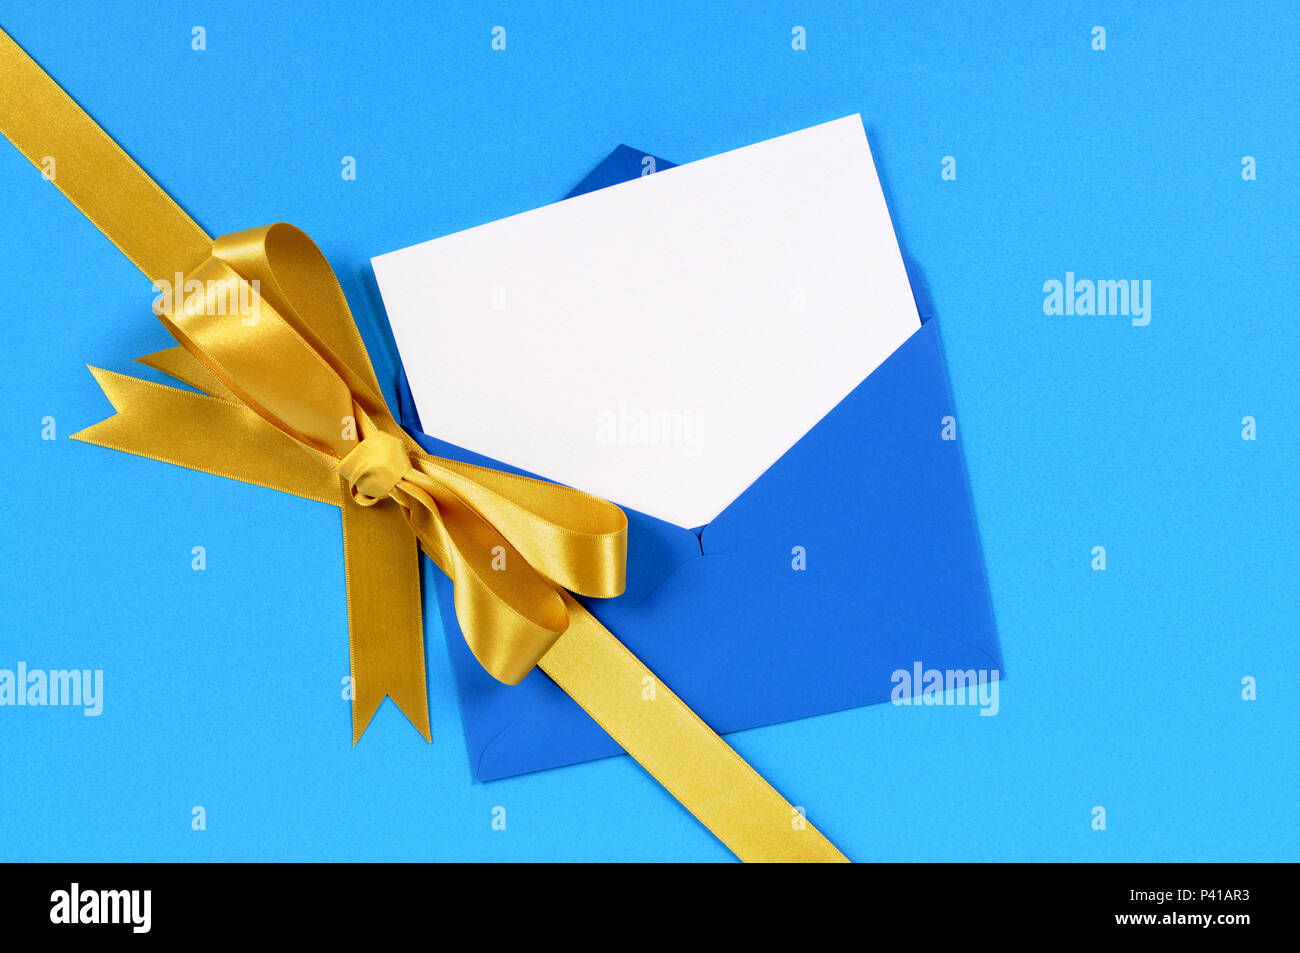 Blue And Gold Gift With Blank Invitation Or Greetings Card Stock